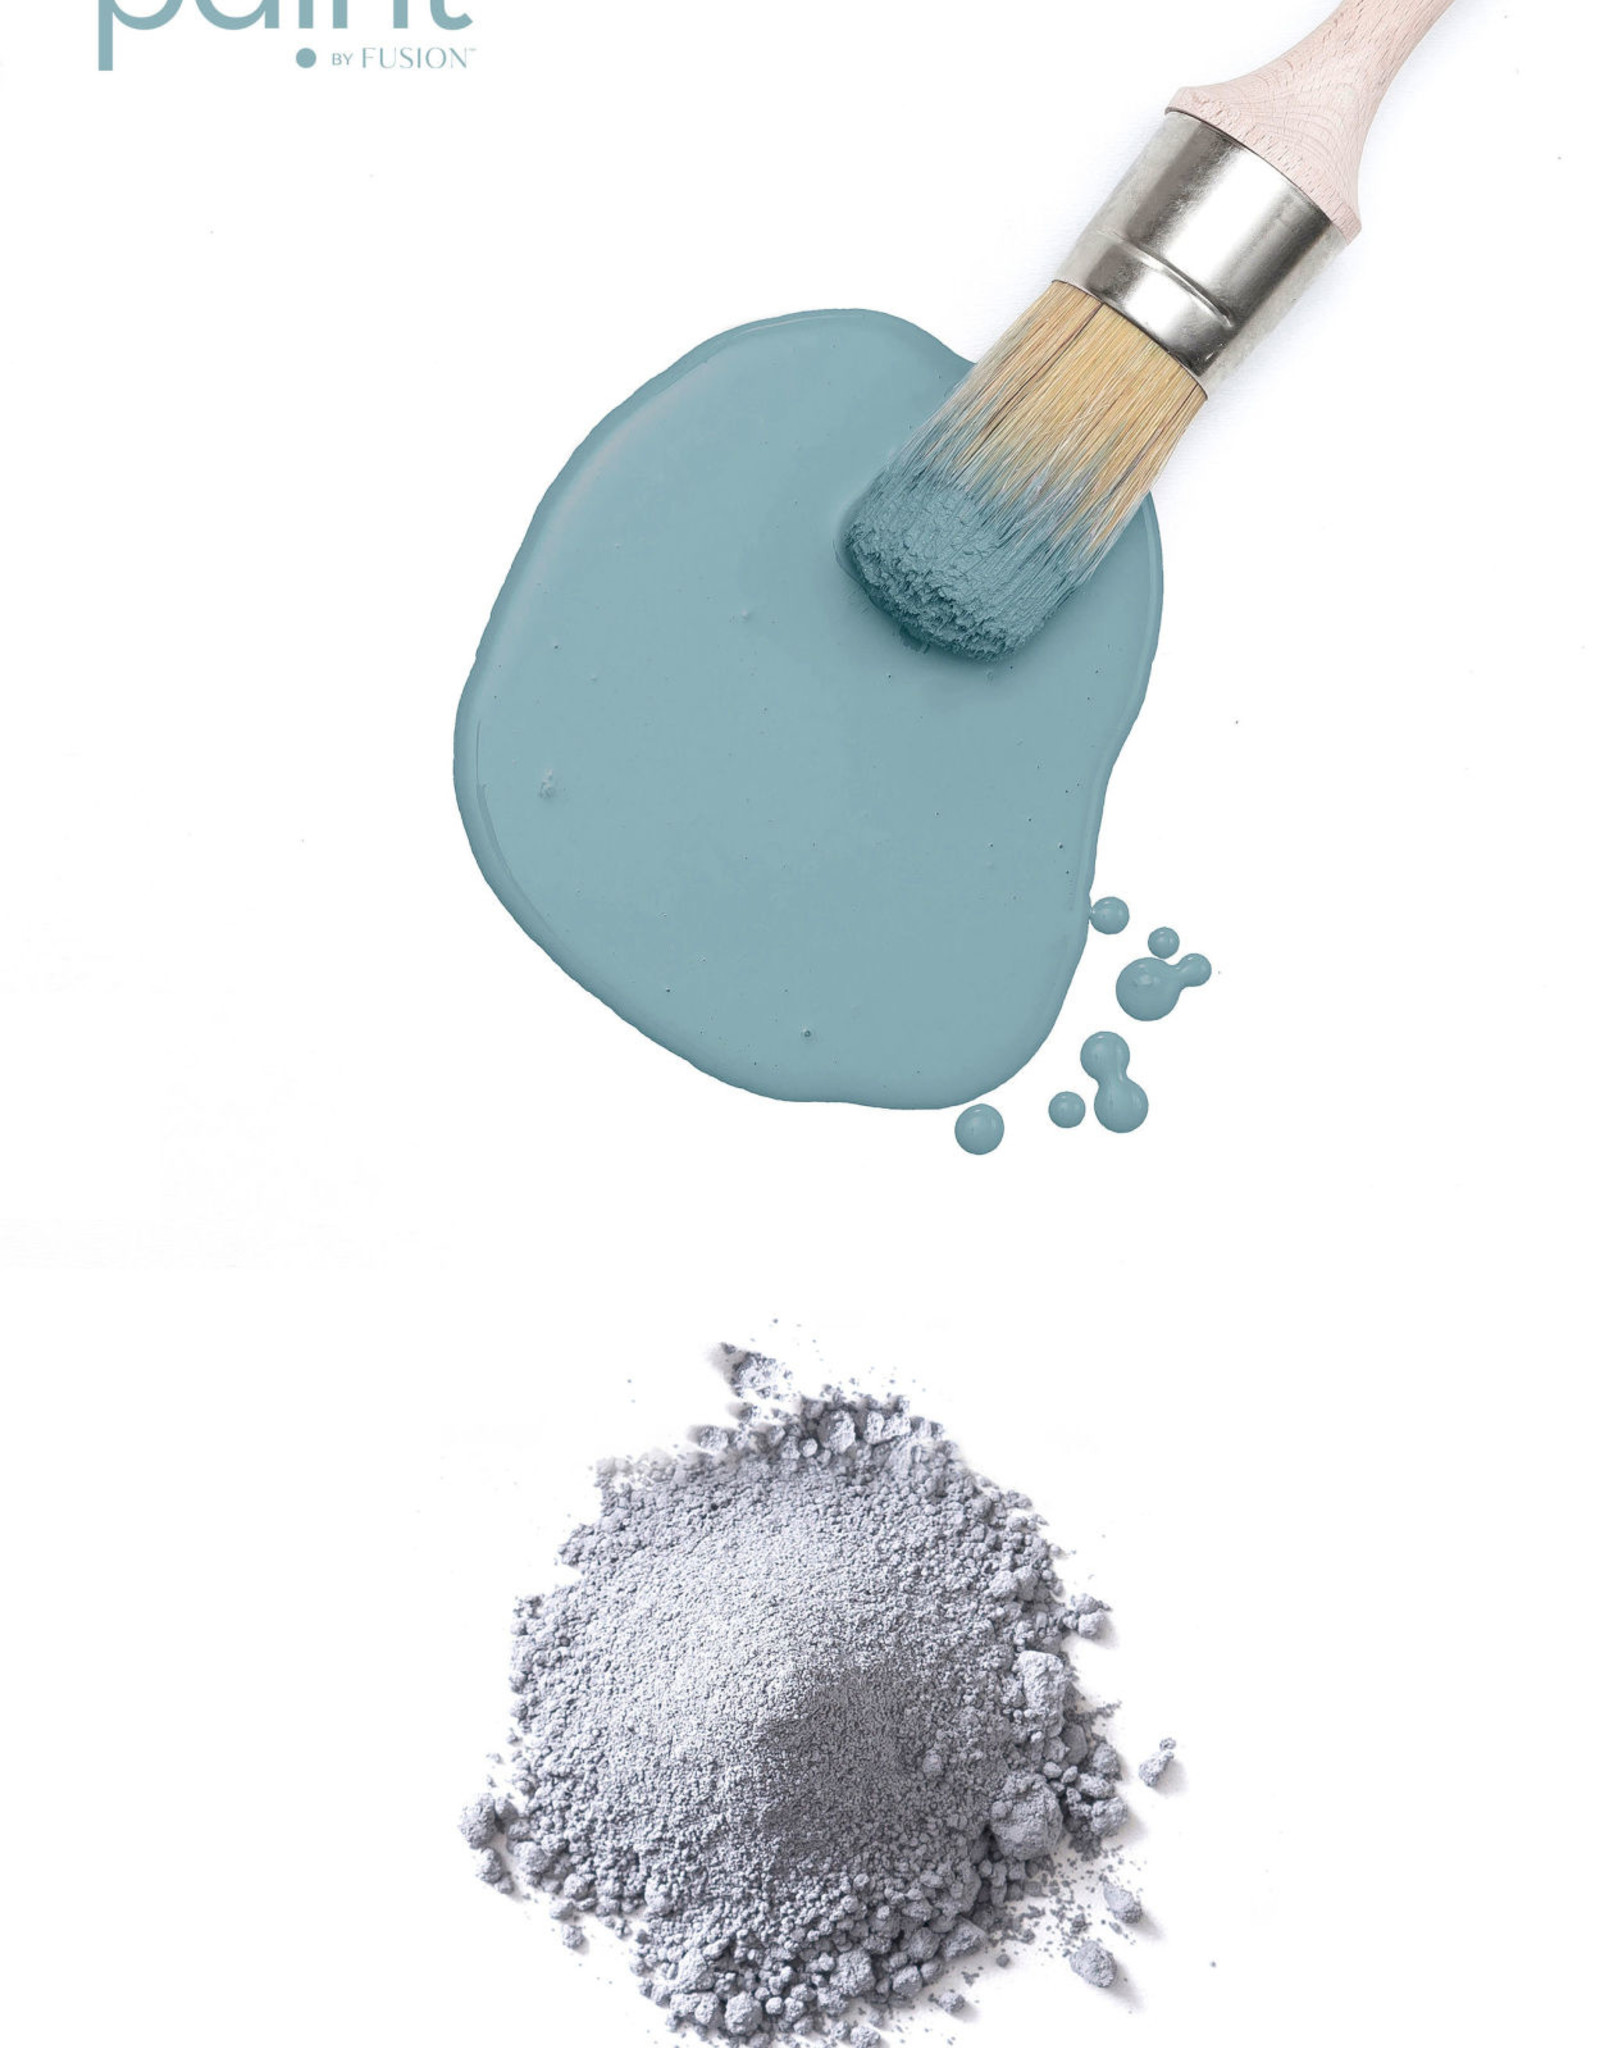 Fusion Mineral Paint Milk Paint 50g Skinny Jeans